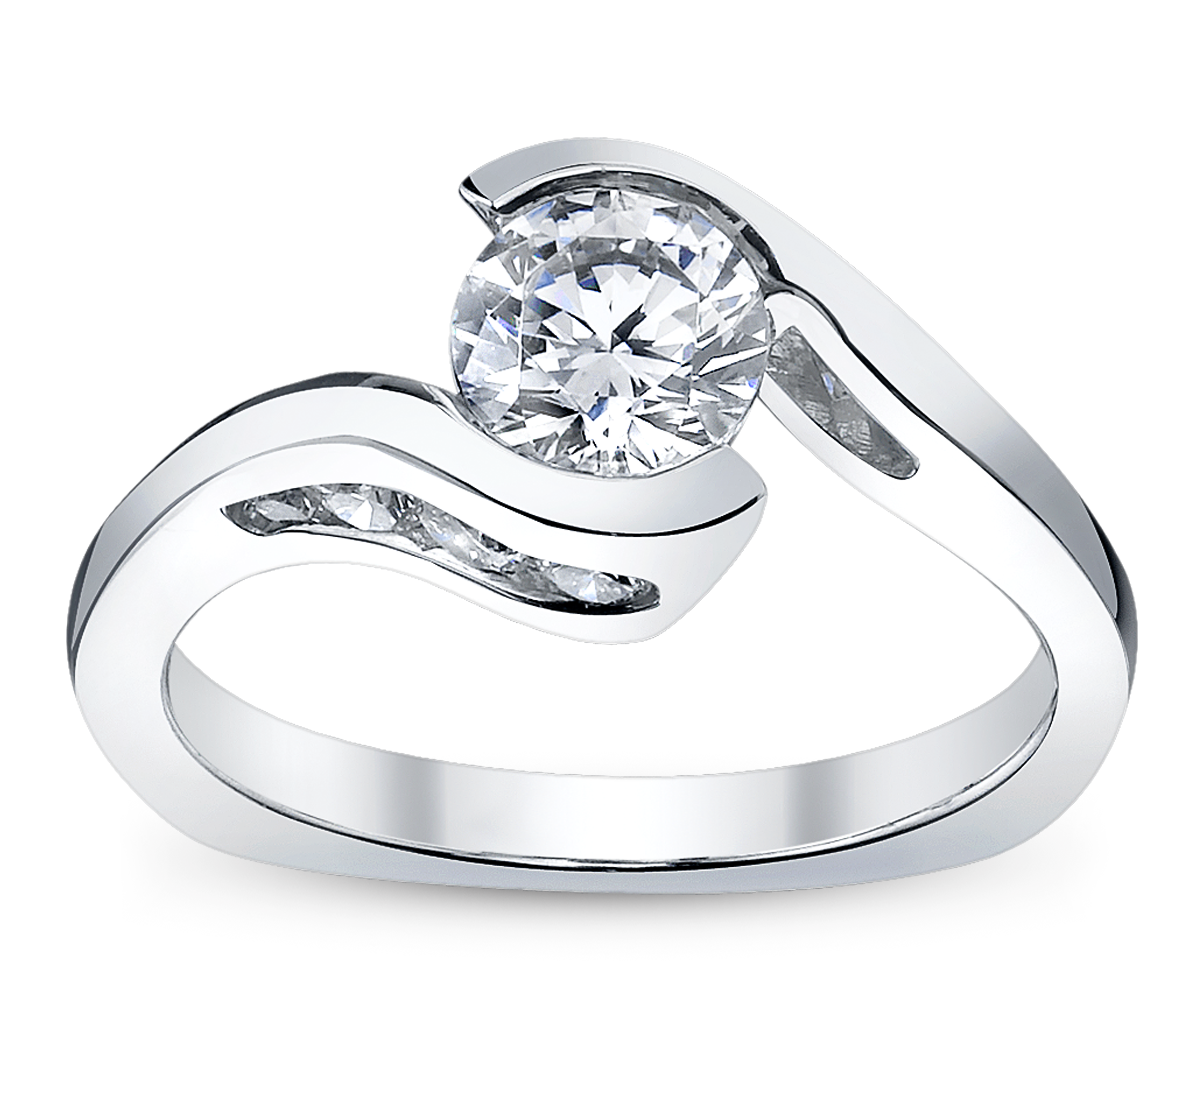 top engagement robbins available a at with rings for twist quirky bride to lovely style solitaire modern ring stones side the